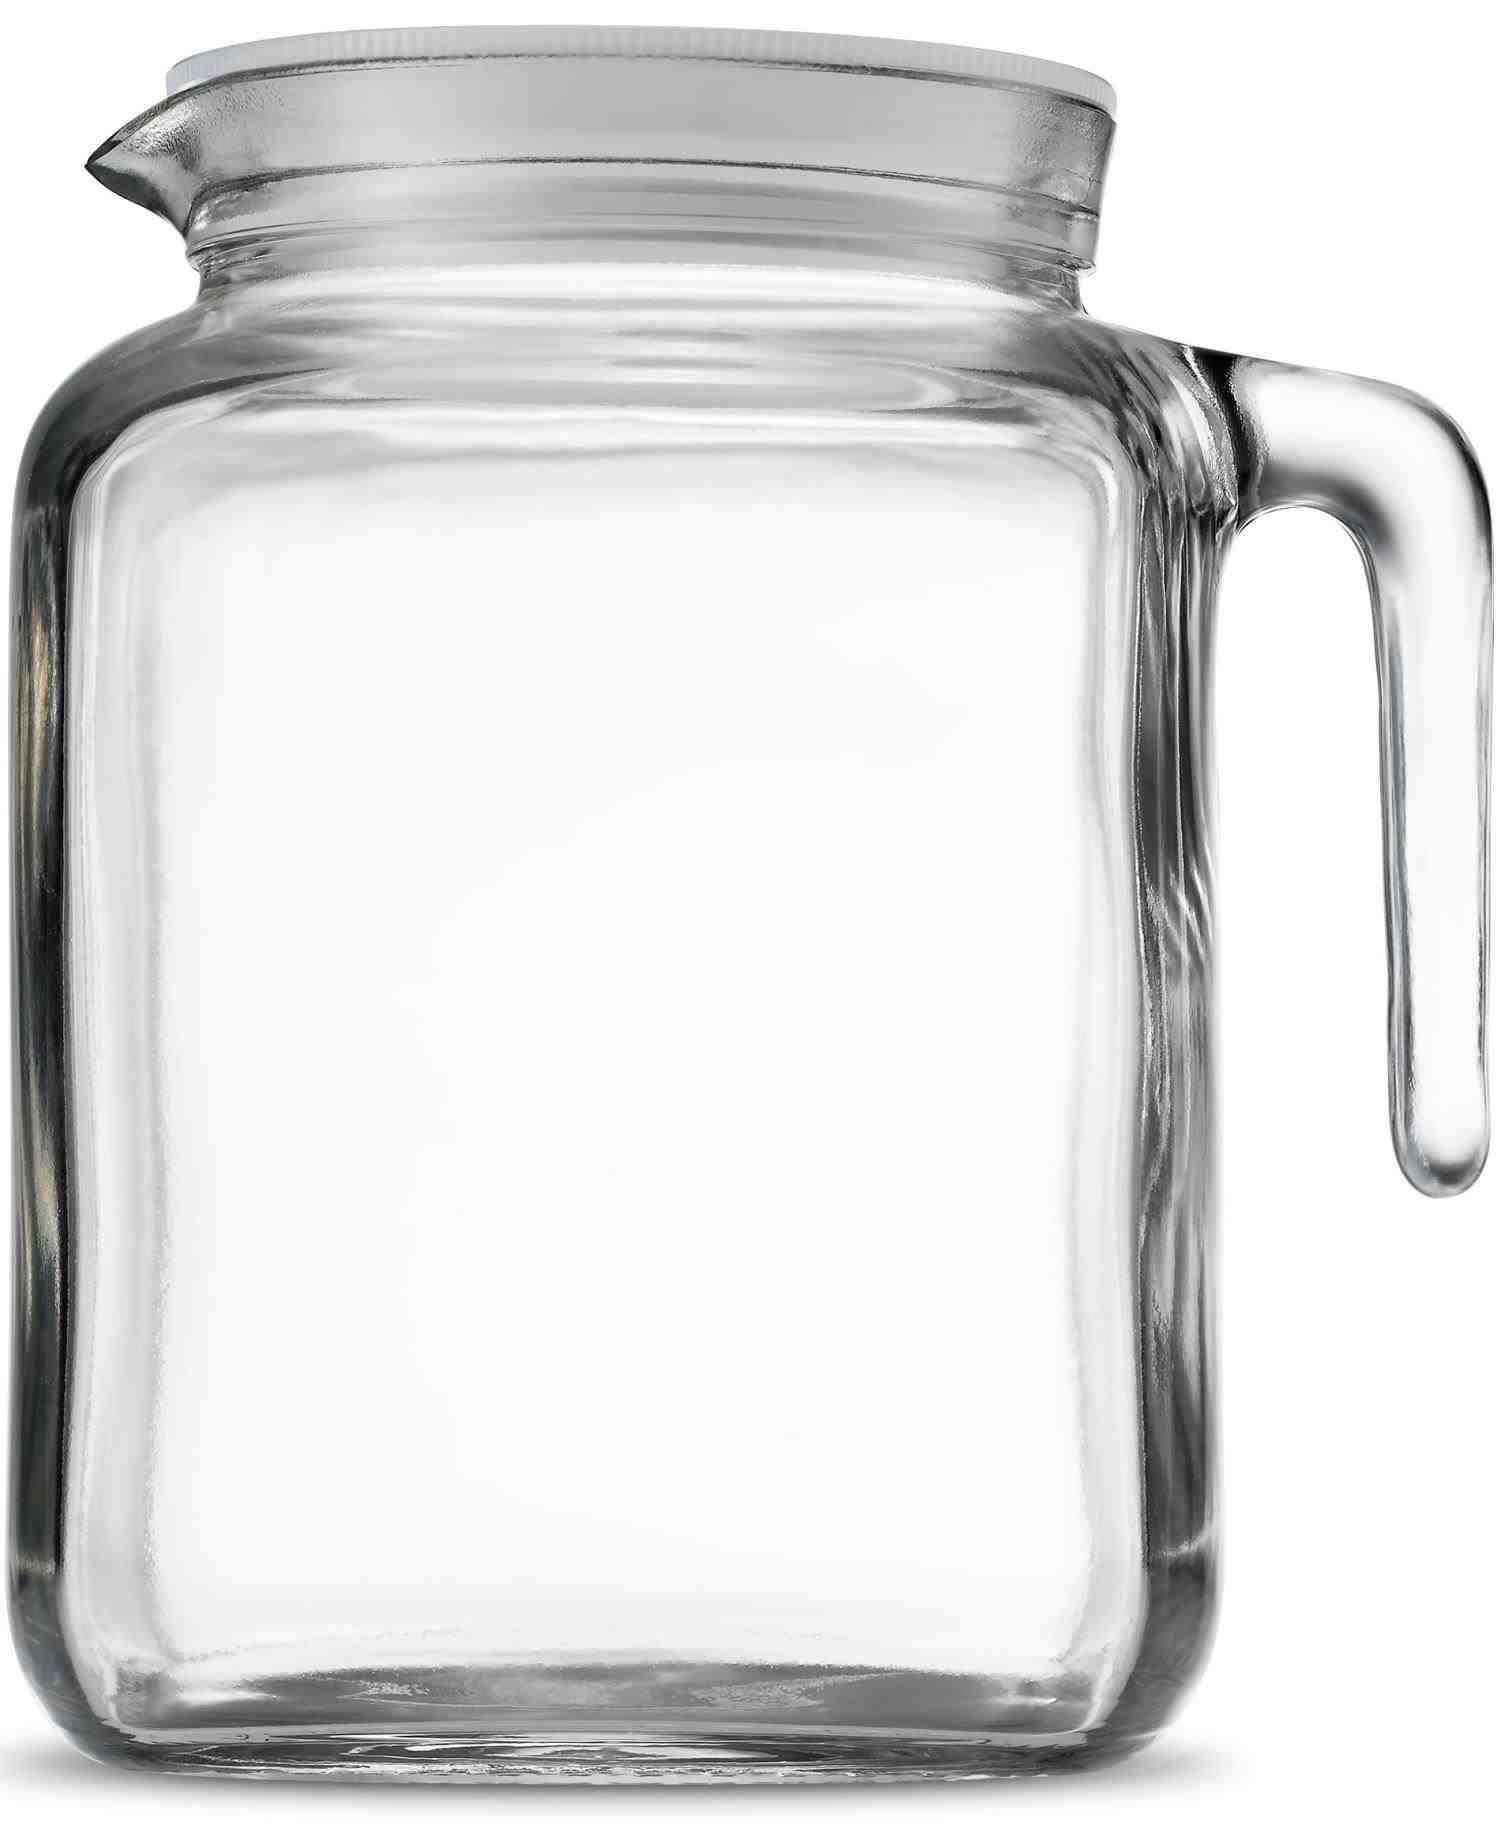 Kitchen canisters glass  New Post white tea sugar coffee jars  Decors Ideas  Pinterest